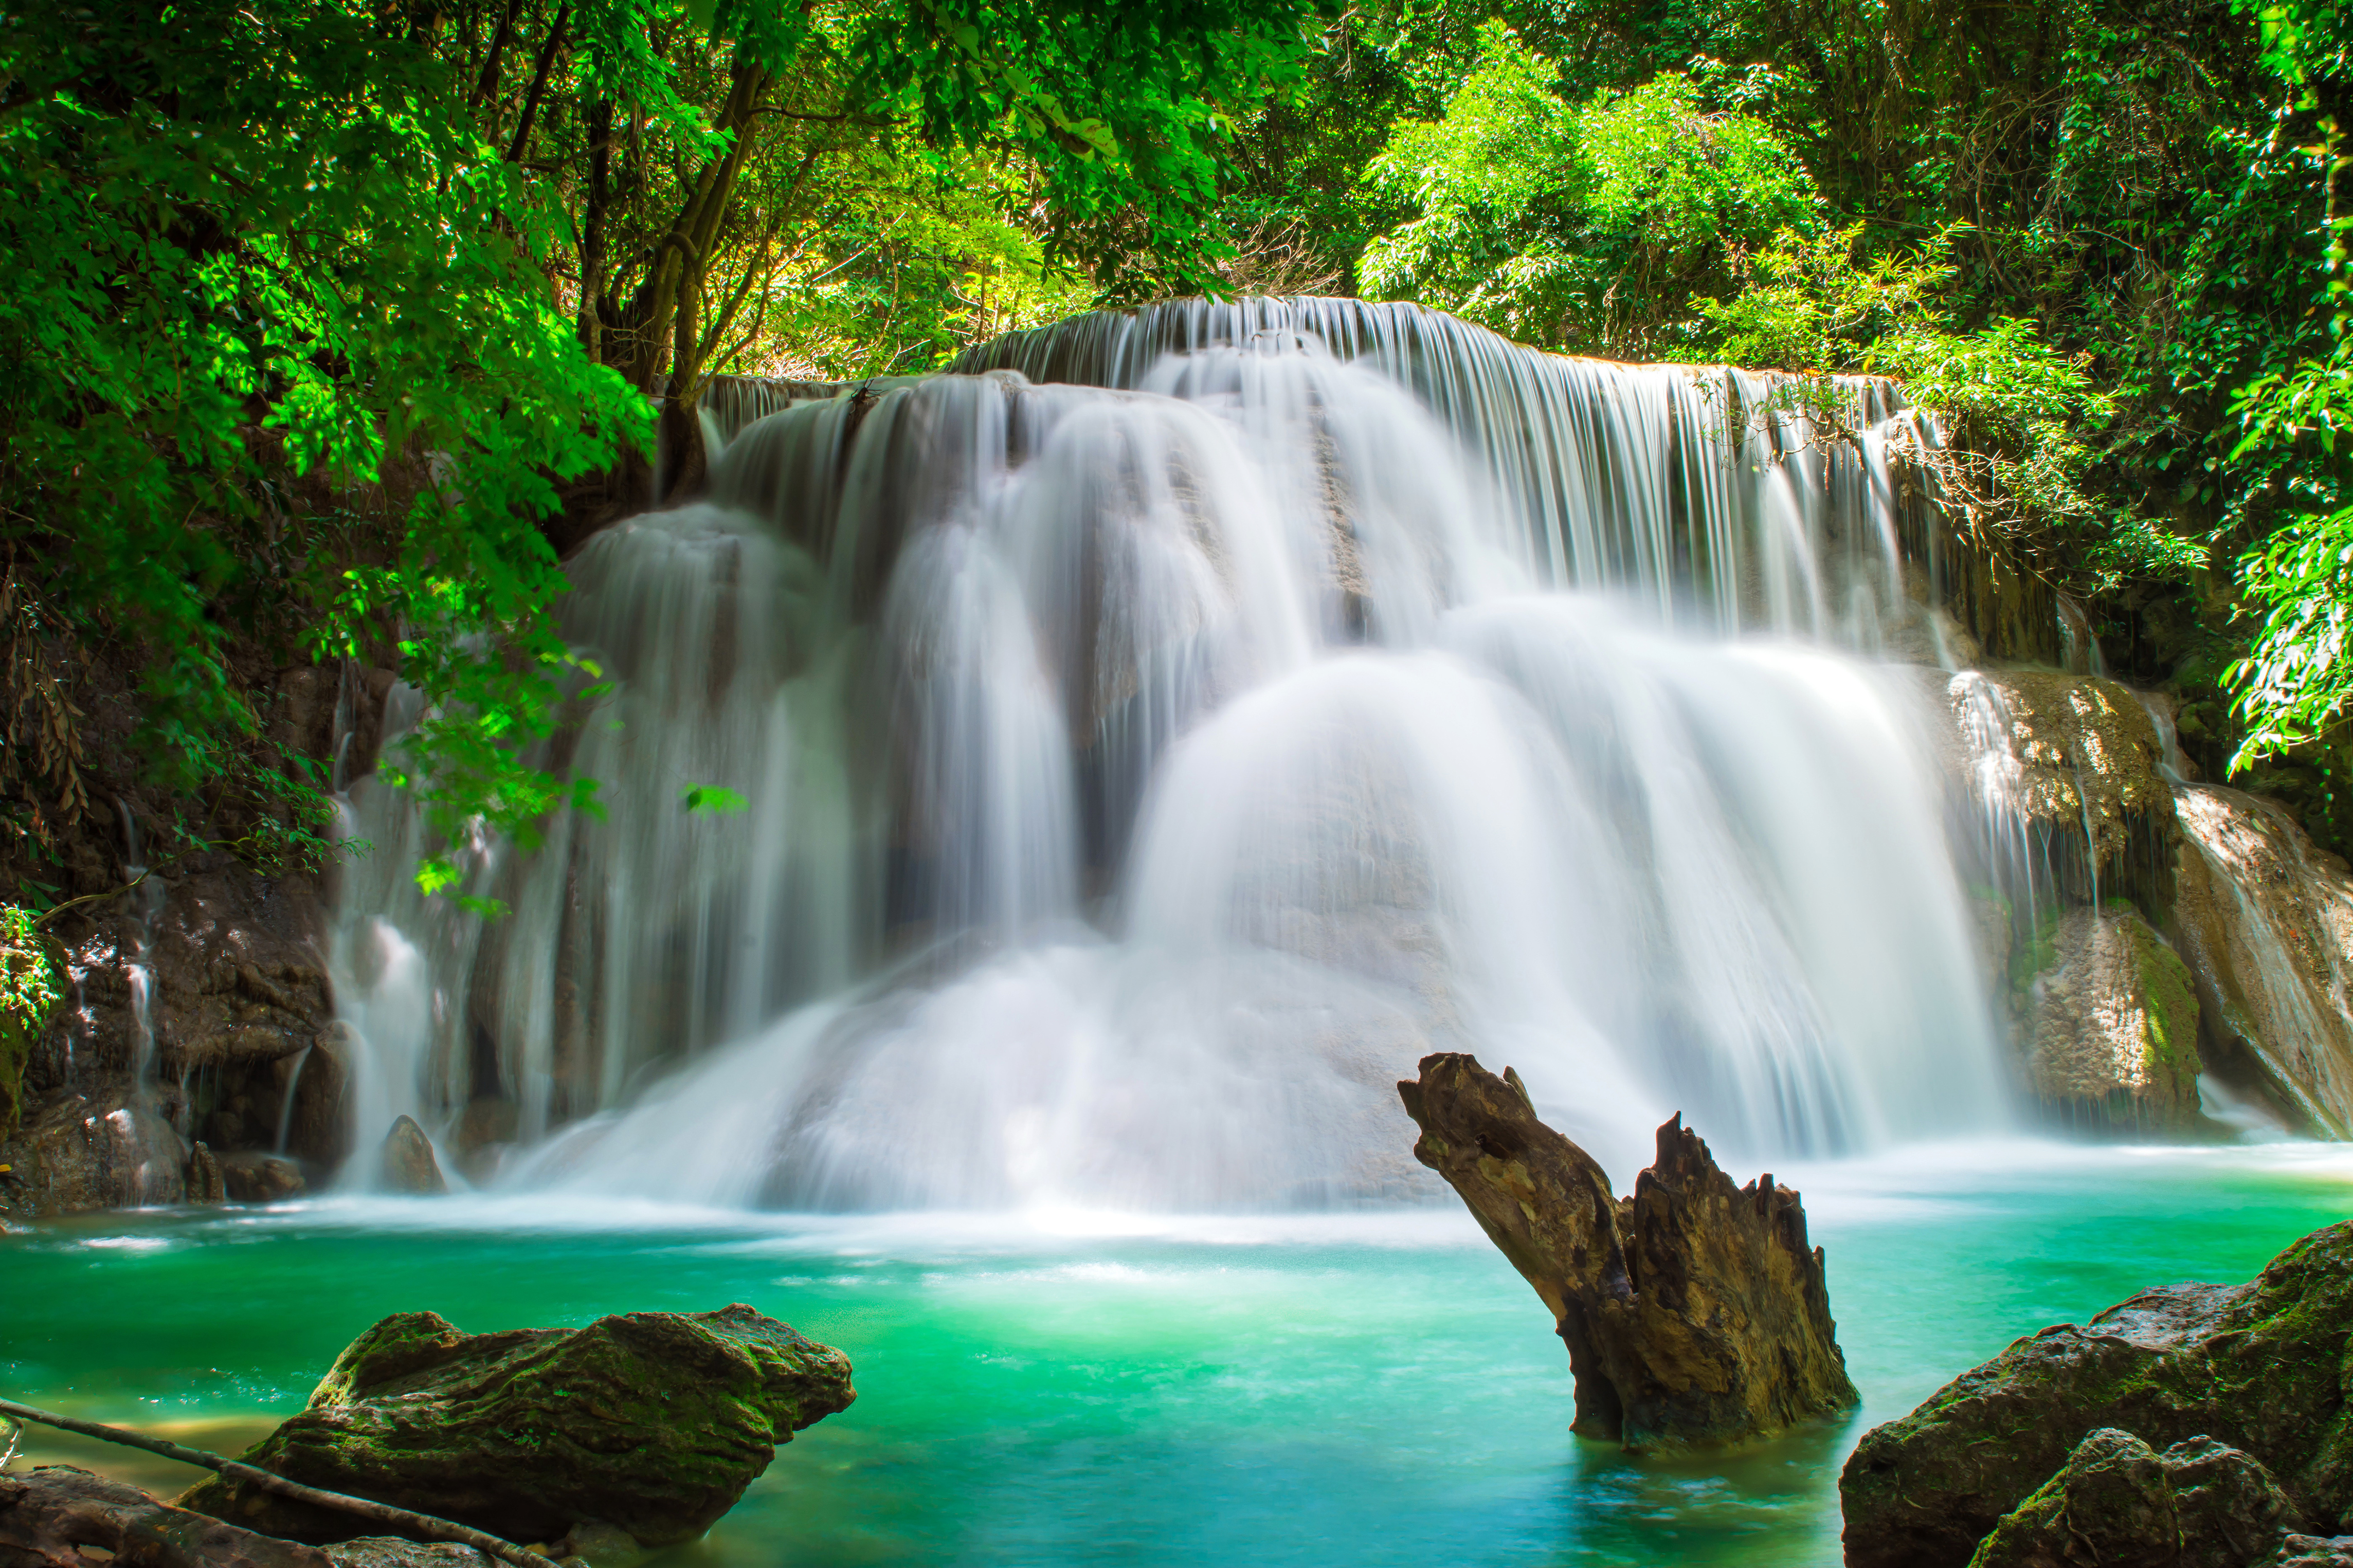 Forest Turquoise Waterfall 4576x3050